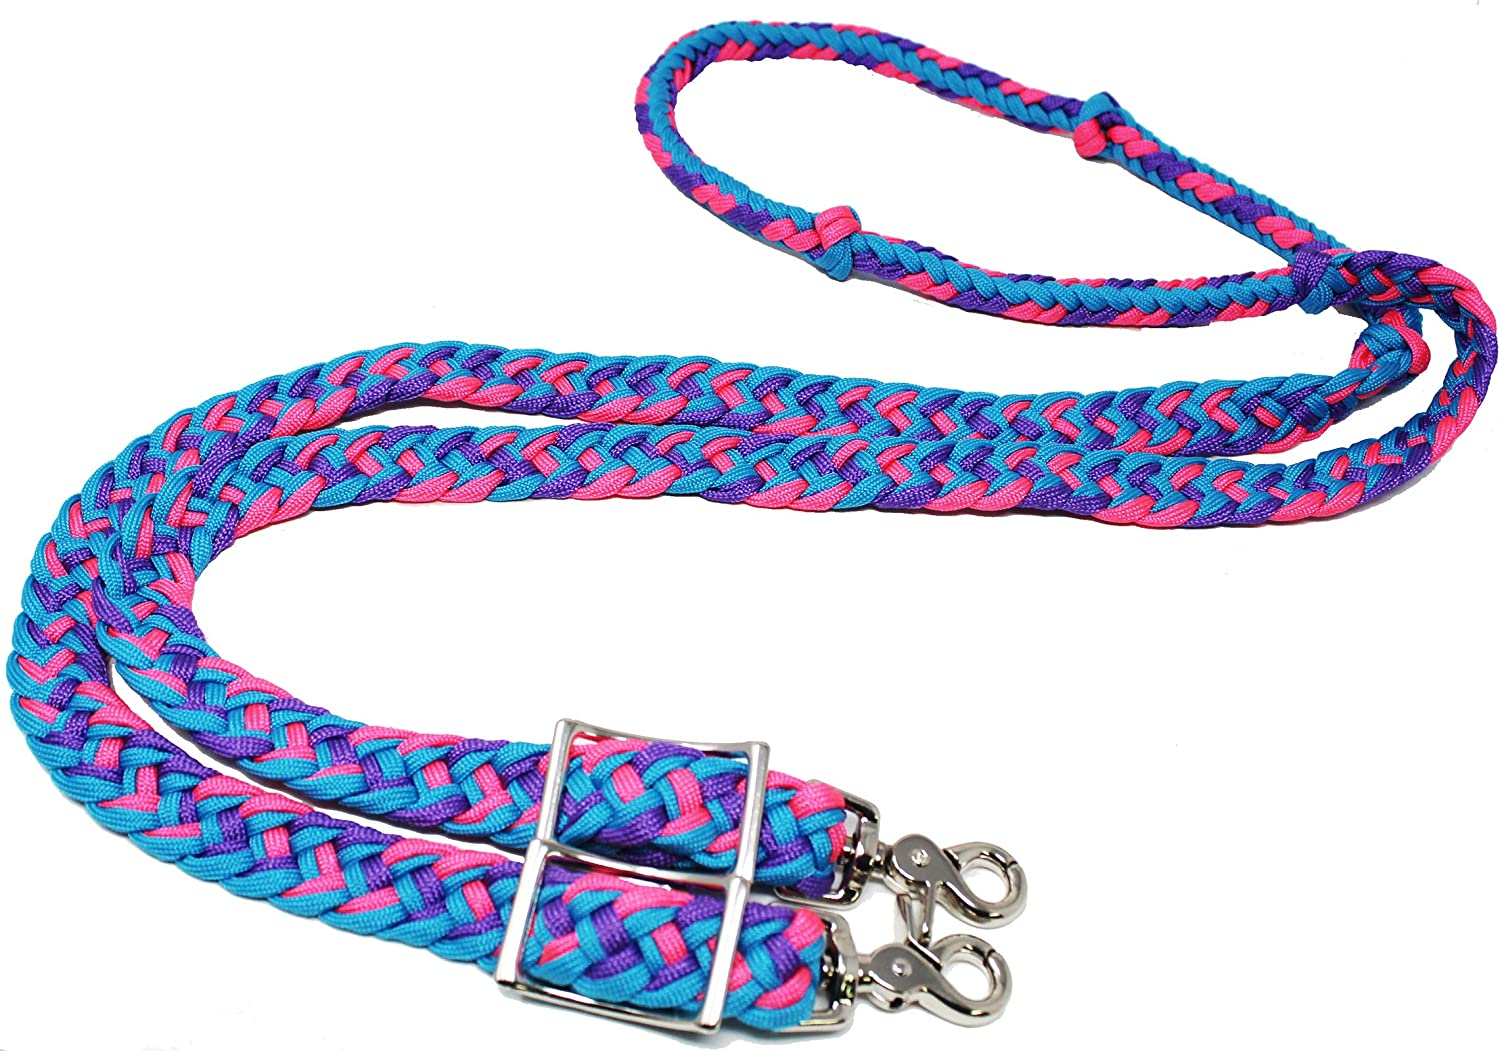 CHALLENGER Horse Nylon Braided Knotted Reins Finally popular brand Turqu Factory outlet Roping Barrel